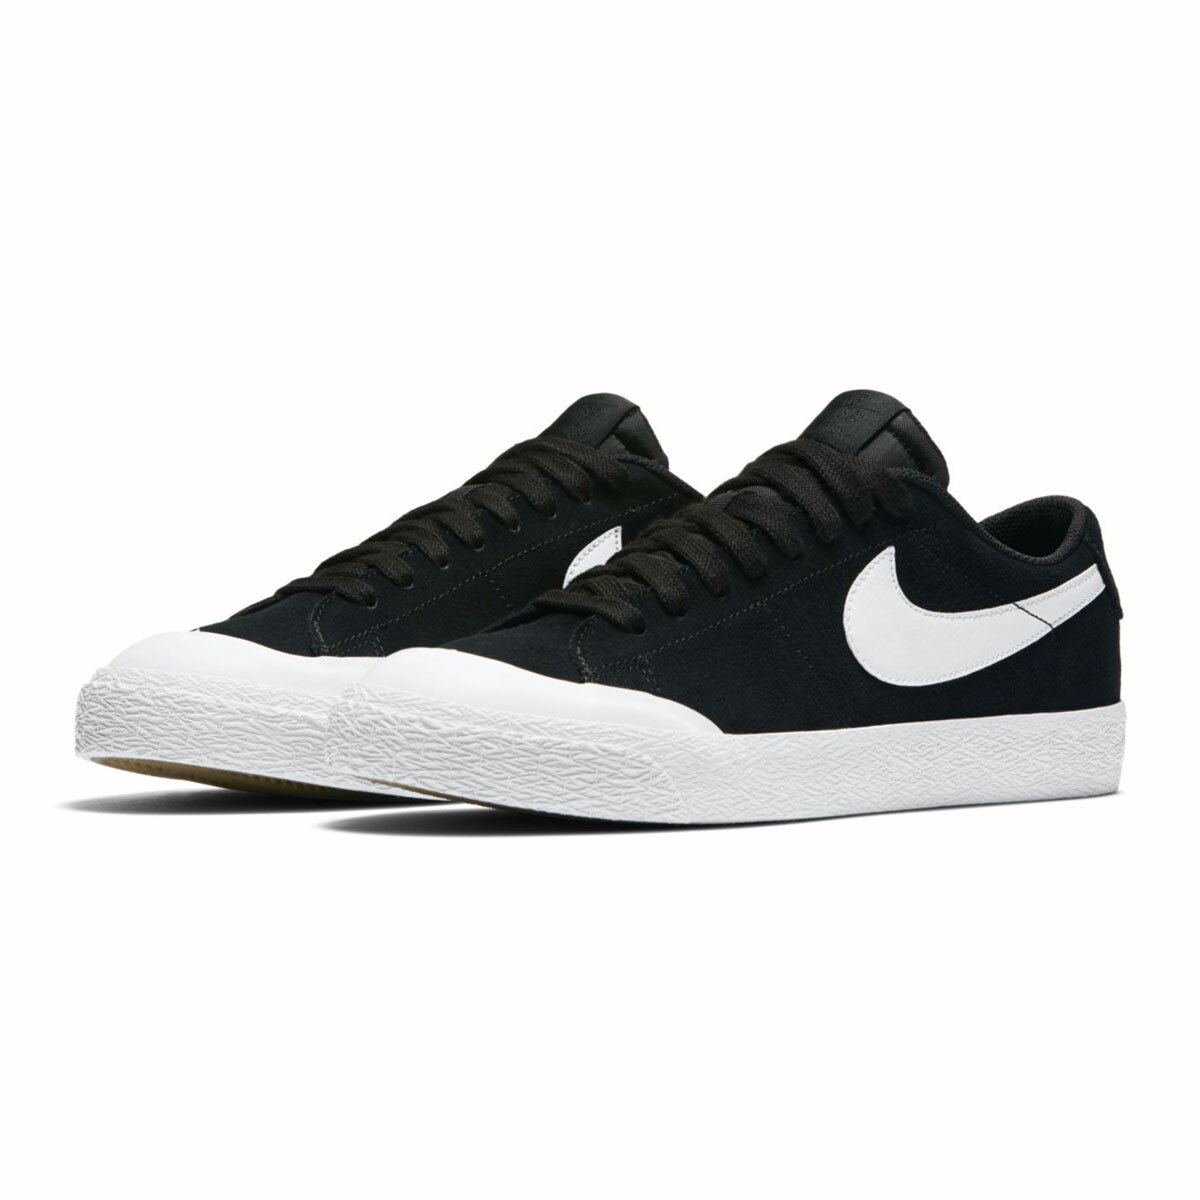 NIKE SB BLAZER ZOOM LOW XT (ナイキ ナイキSB ブレーザー ズーム ロー XT) BLACK/WHITE-GUM LIGHT BROWN-WHITE【メンズ スニーカー】 17HO-I